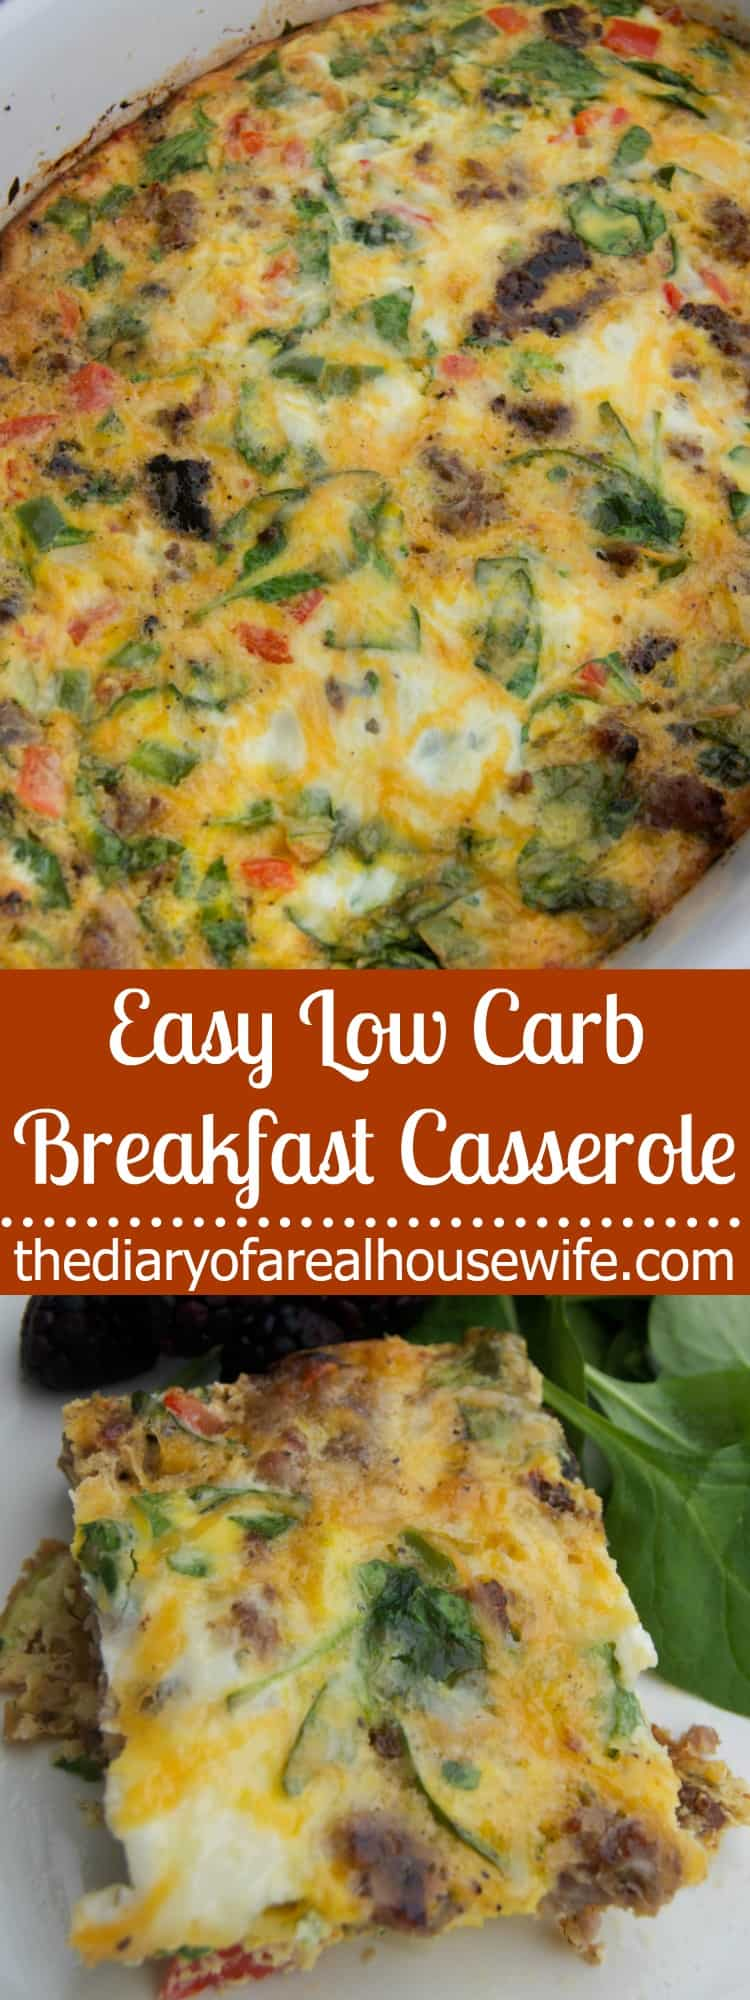 Easy Low Carb Breakfast Casserole - Best Keto Breakfast Casserole Recipes for Ketogenic Diet. Try these amazing Keto breakfast casserole recipes with bacon, cream cheese, spinach or with ham. Great low carb make ahead breakfast, also some slow cooker recipes. #keto #ketogenic #ketorecipes #diet #food #lowcarb